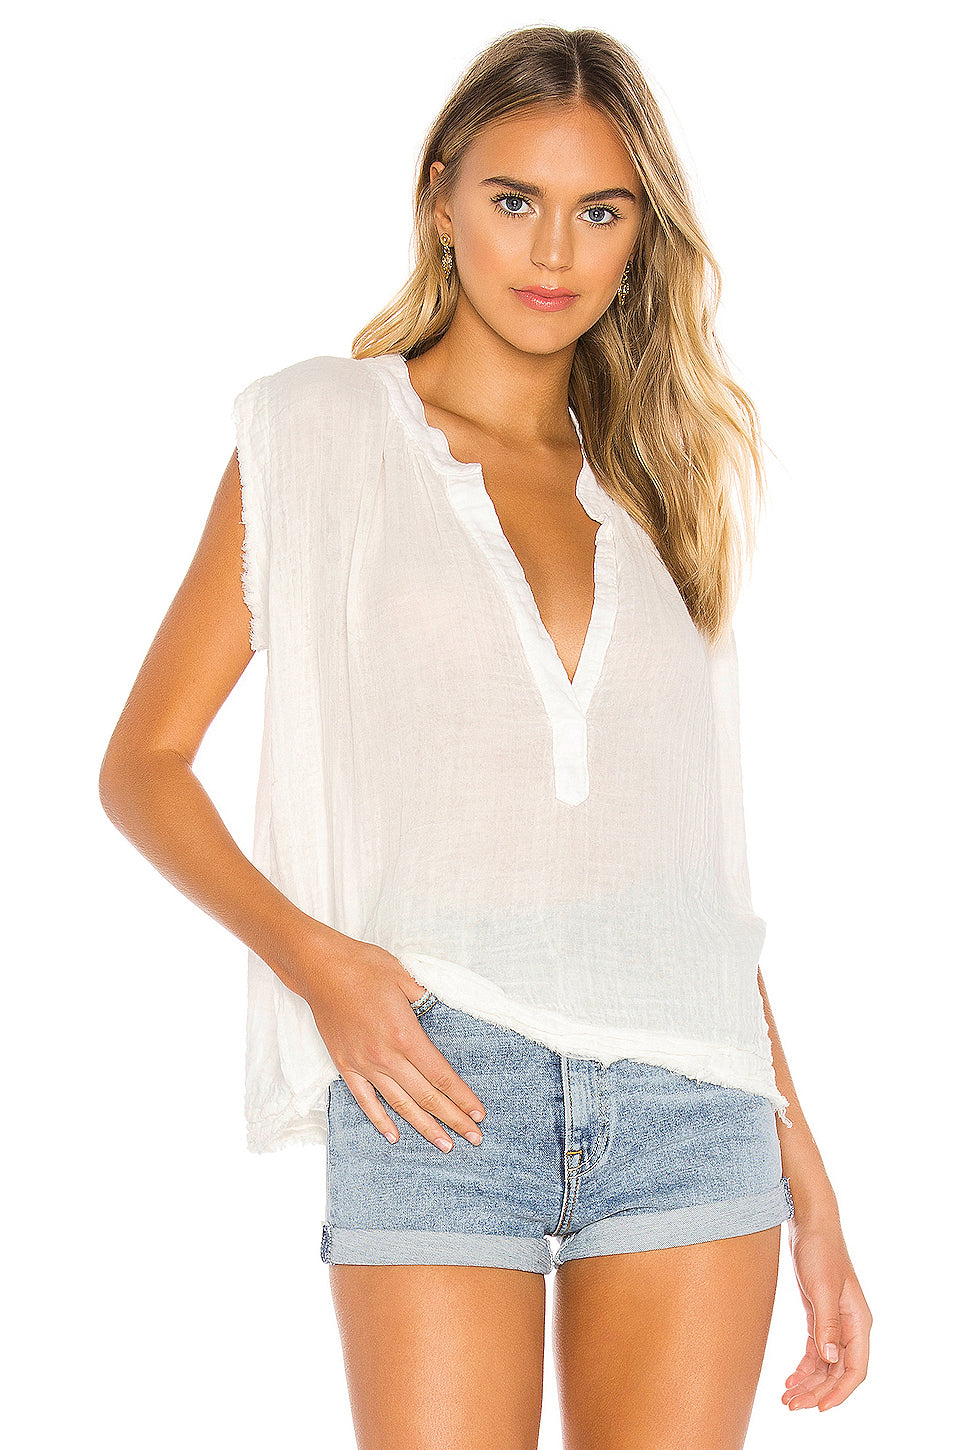 Idyllwild Sleeveless Top